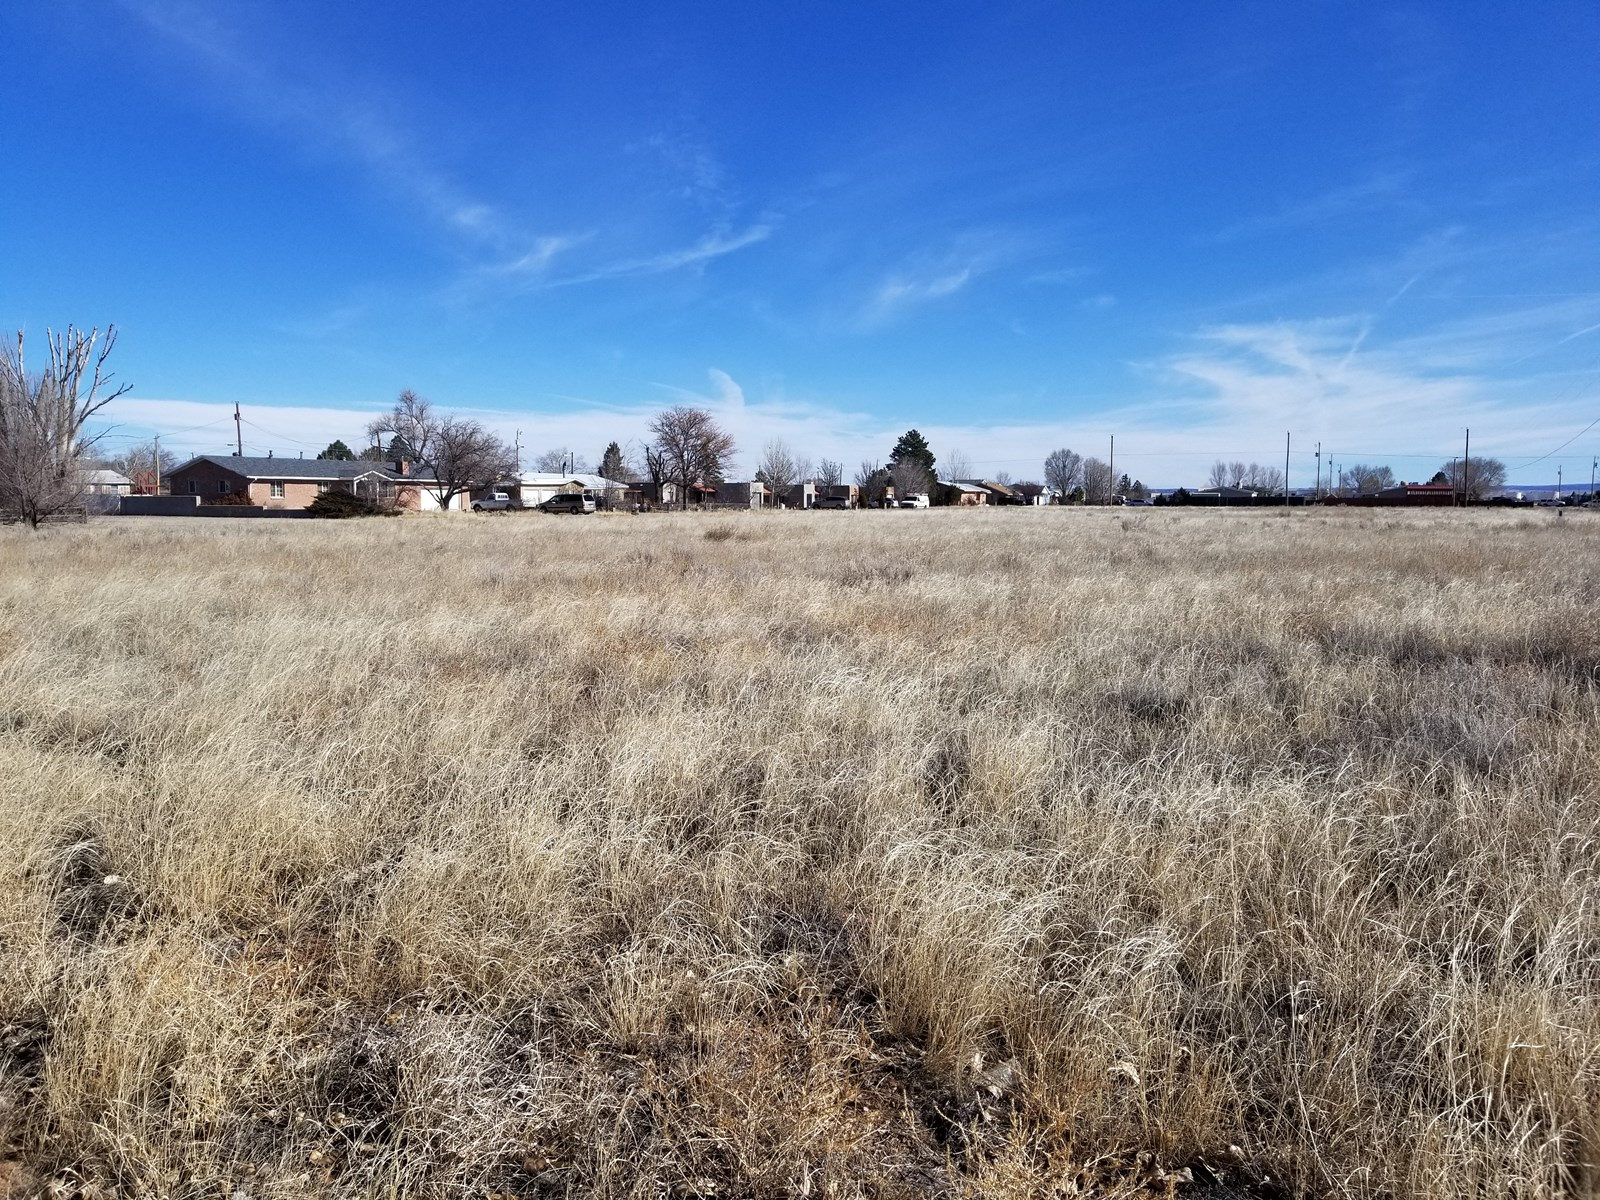 Moriarty NM Residential Lot For Sale Lot In Town Quiet Area